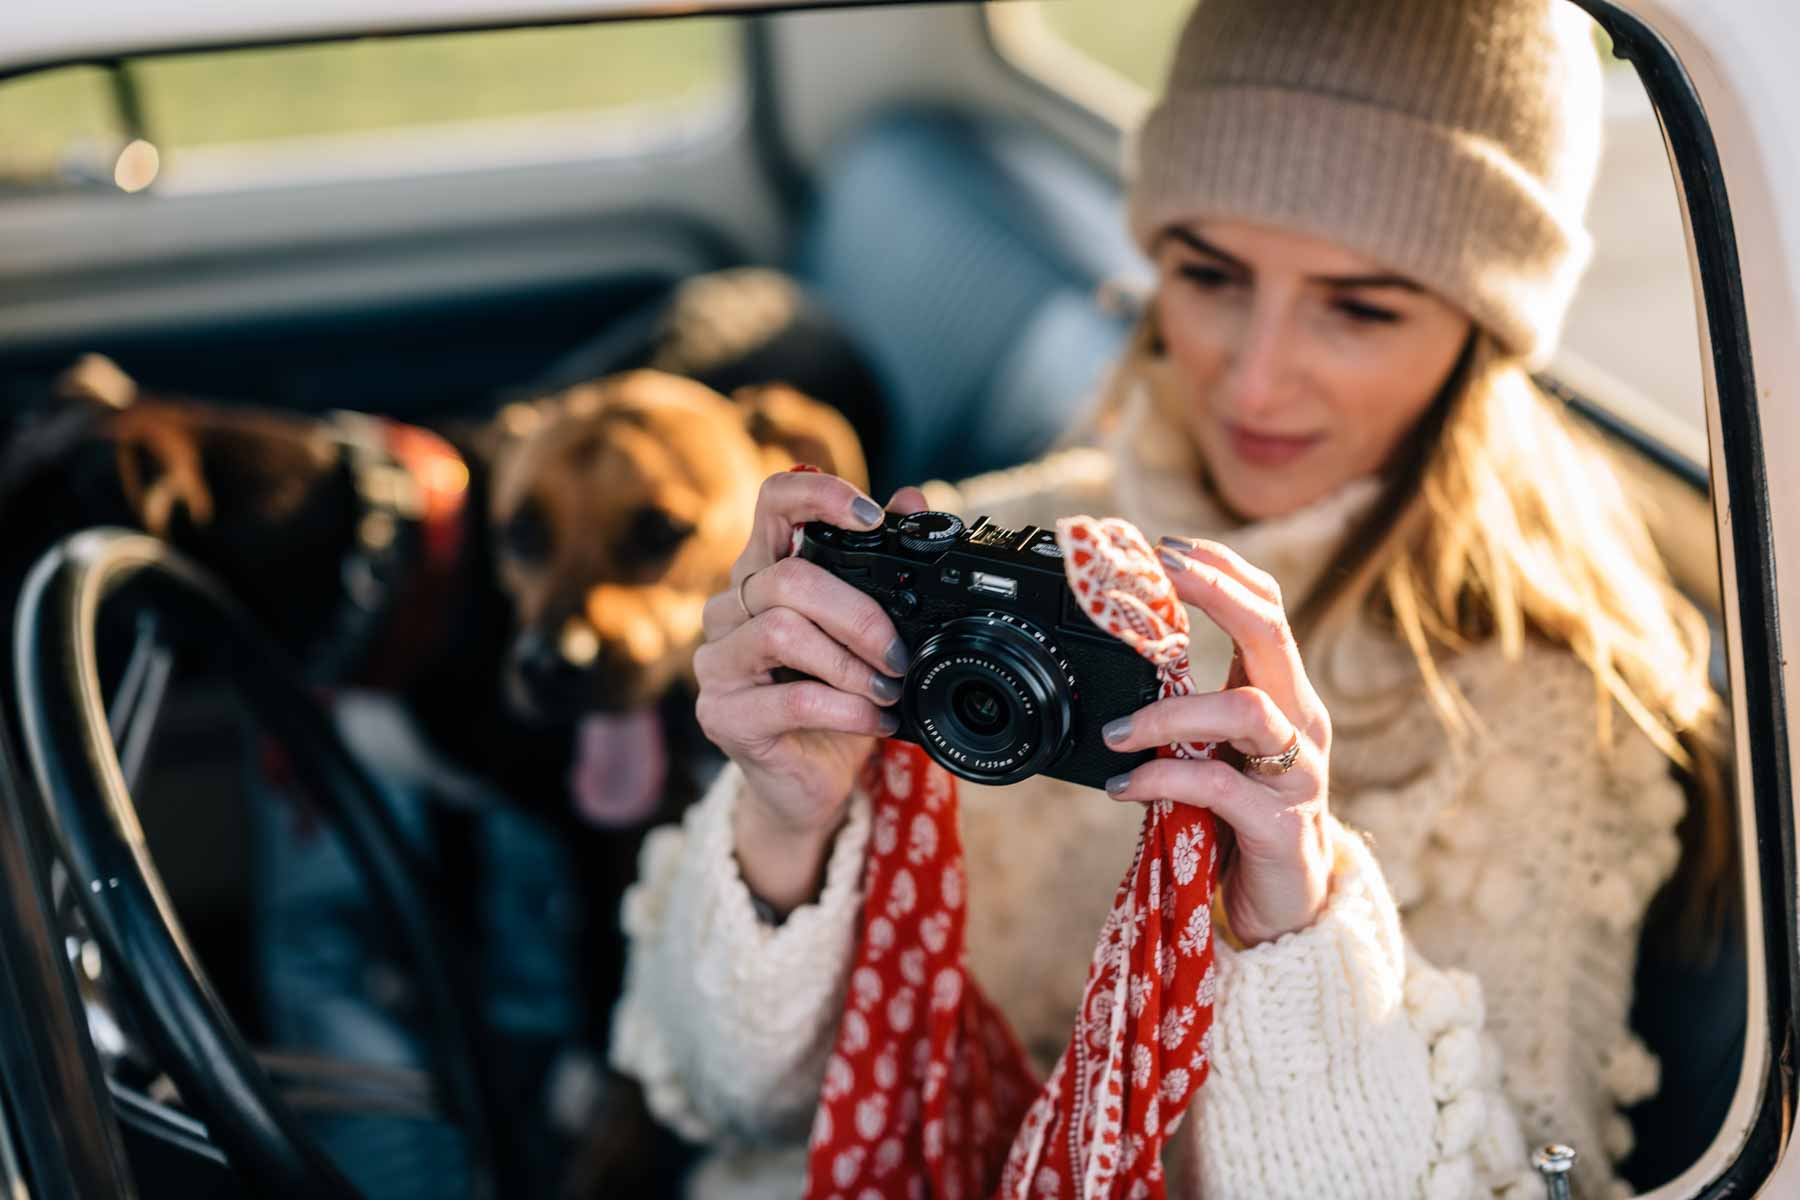 Jess Ann Kirby shares her favorite affordable cameras, like the Fujifilm X100F that she purchased from Ebay